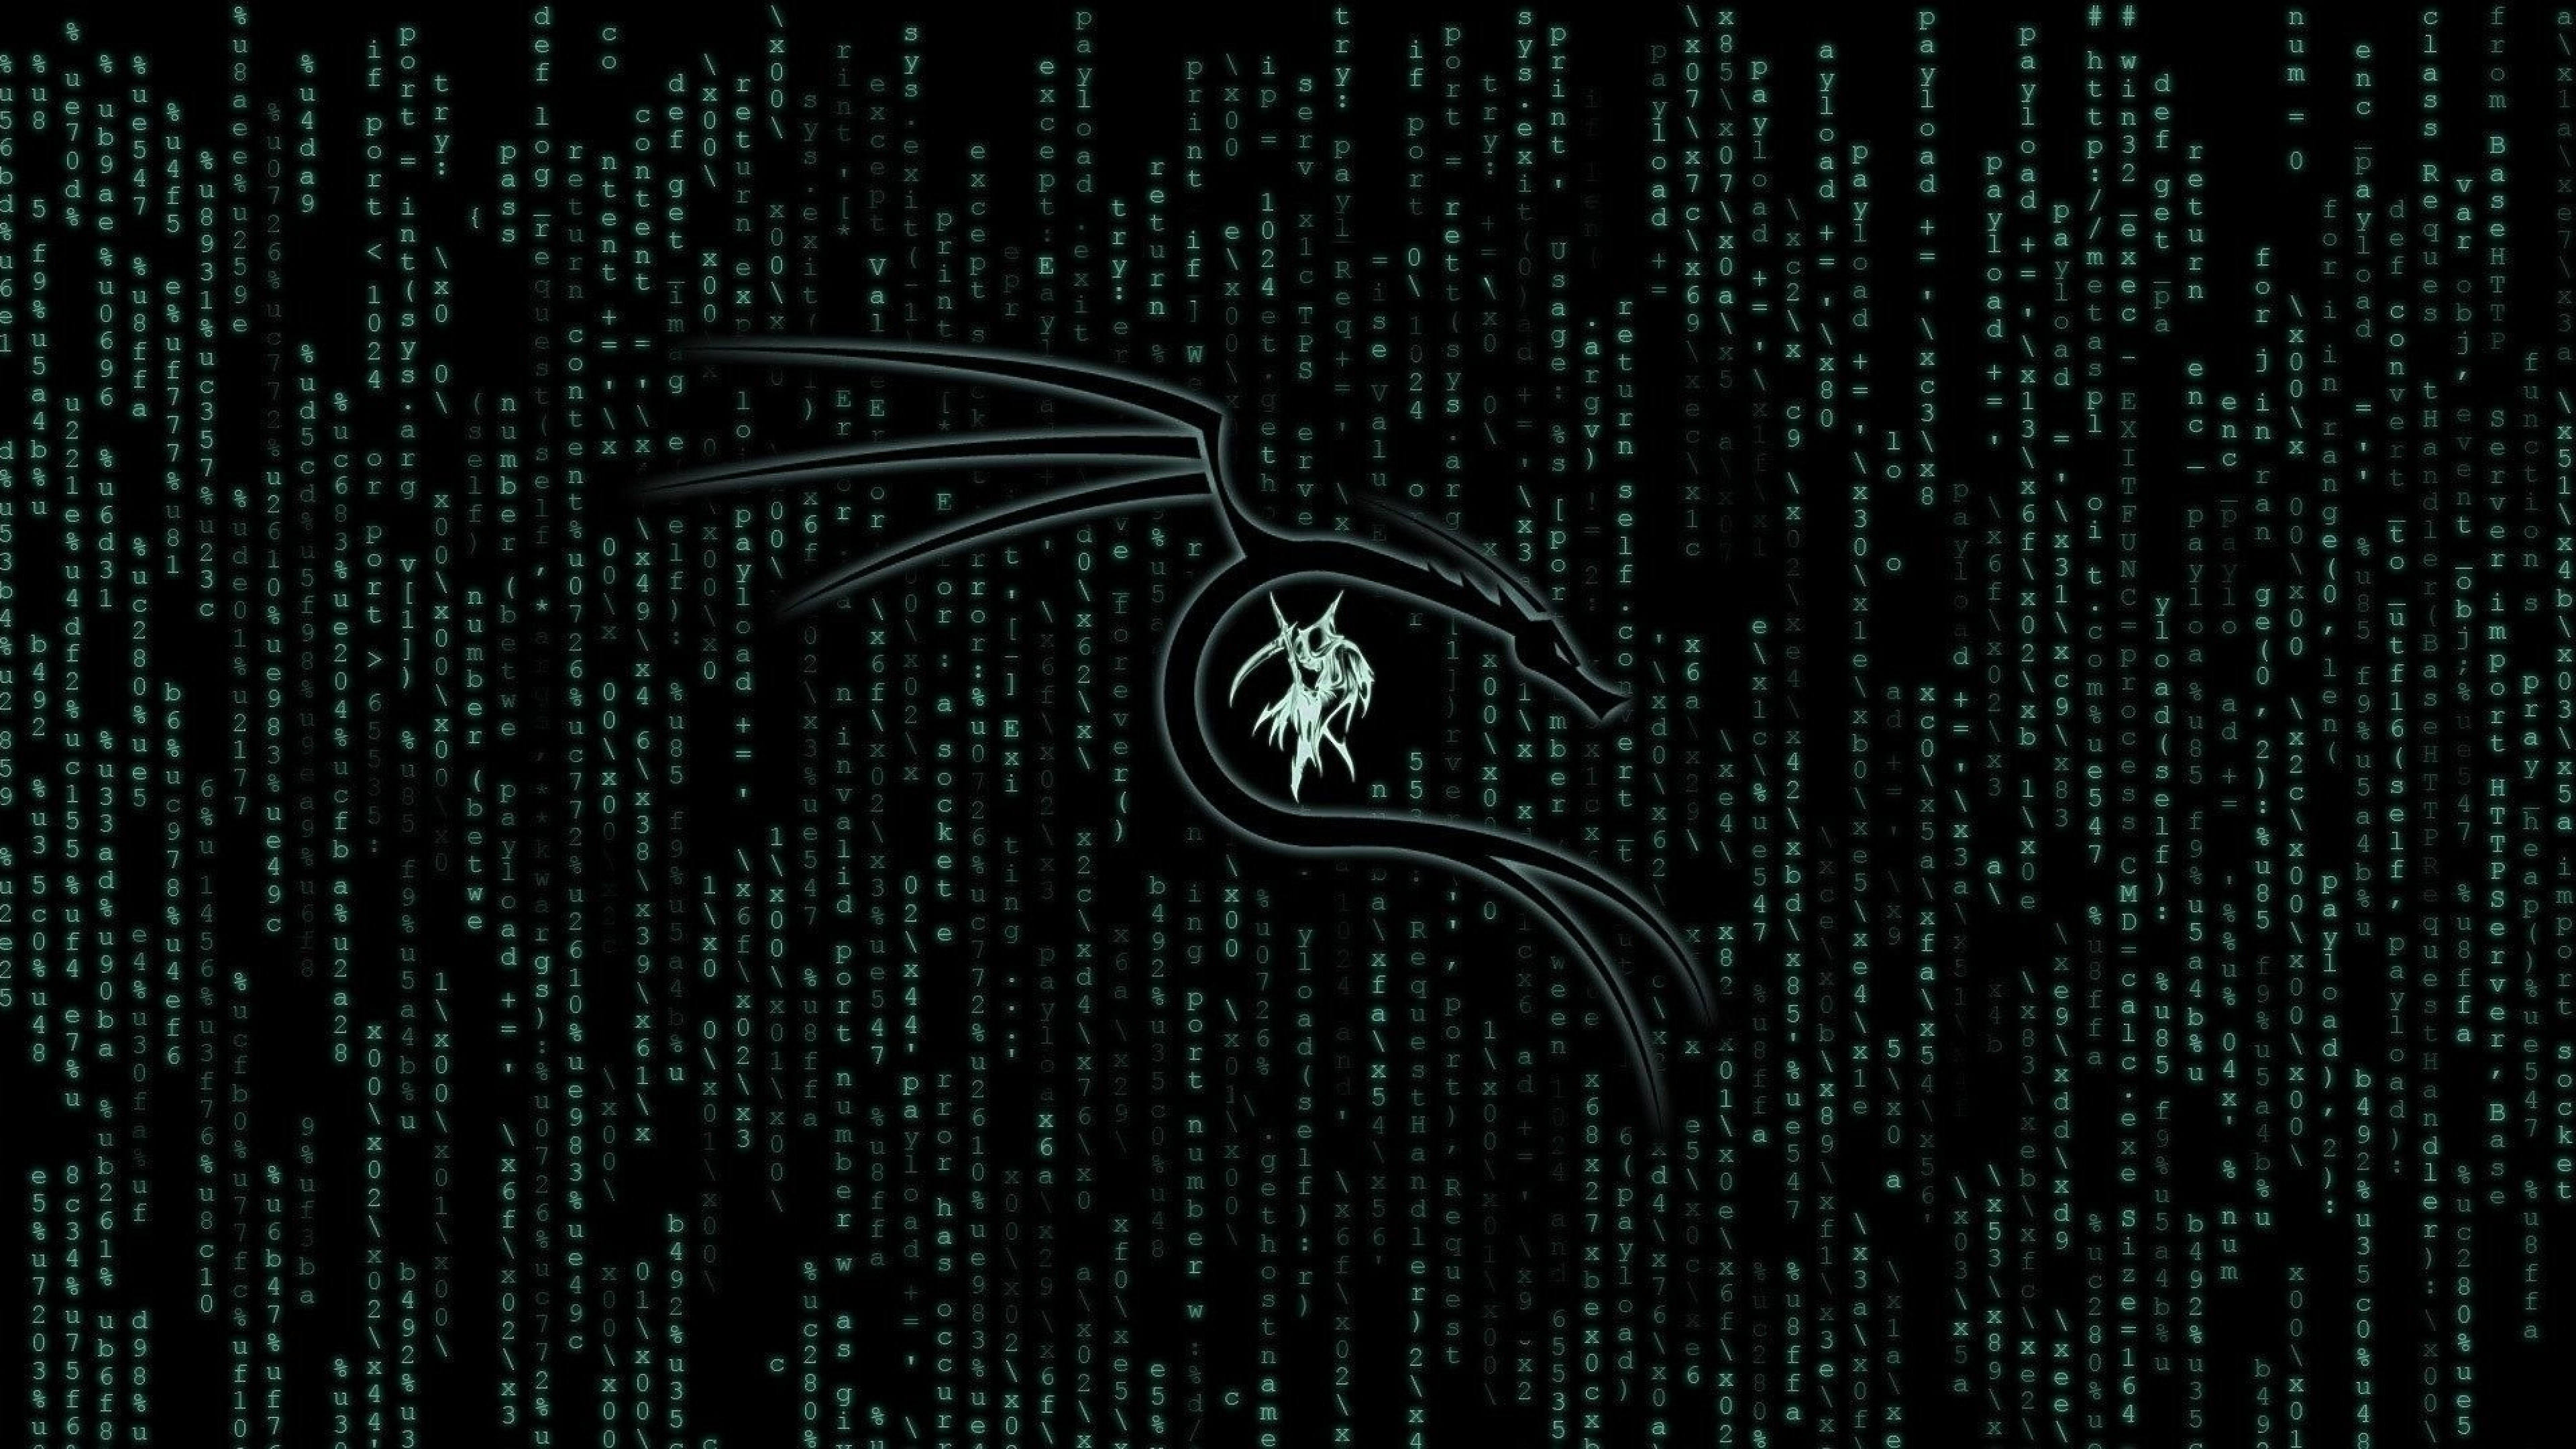 3840x2160 Kali Linux Matrix 4k Wallpaper Hd Hi Tech 4k